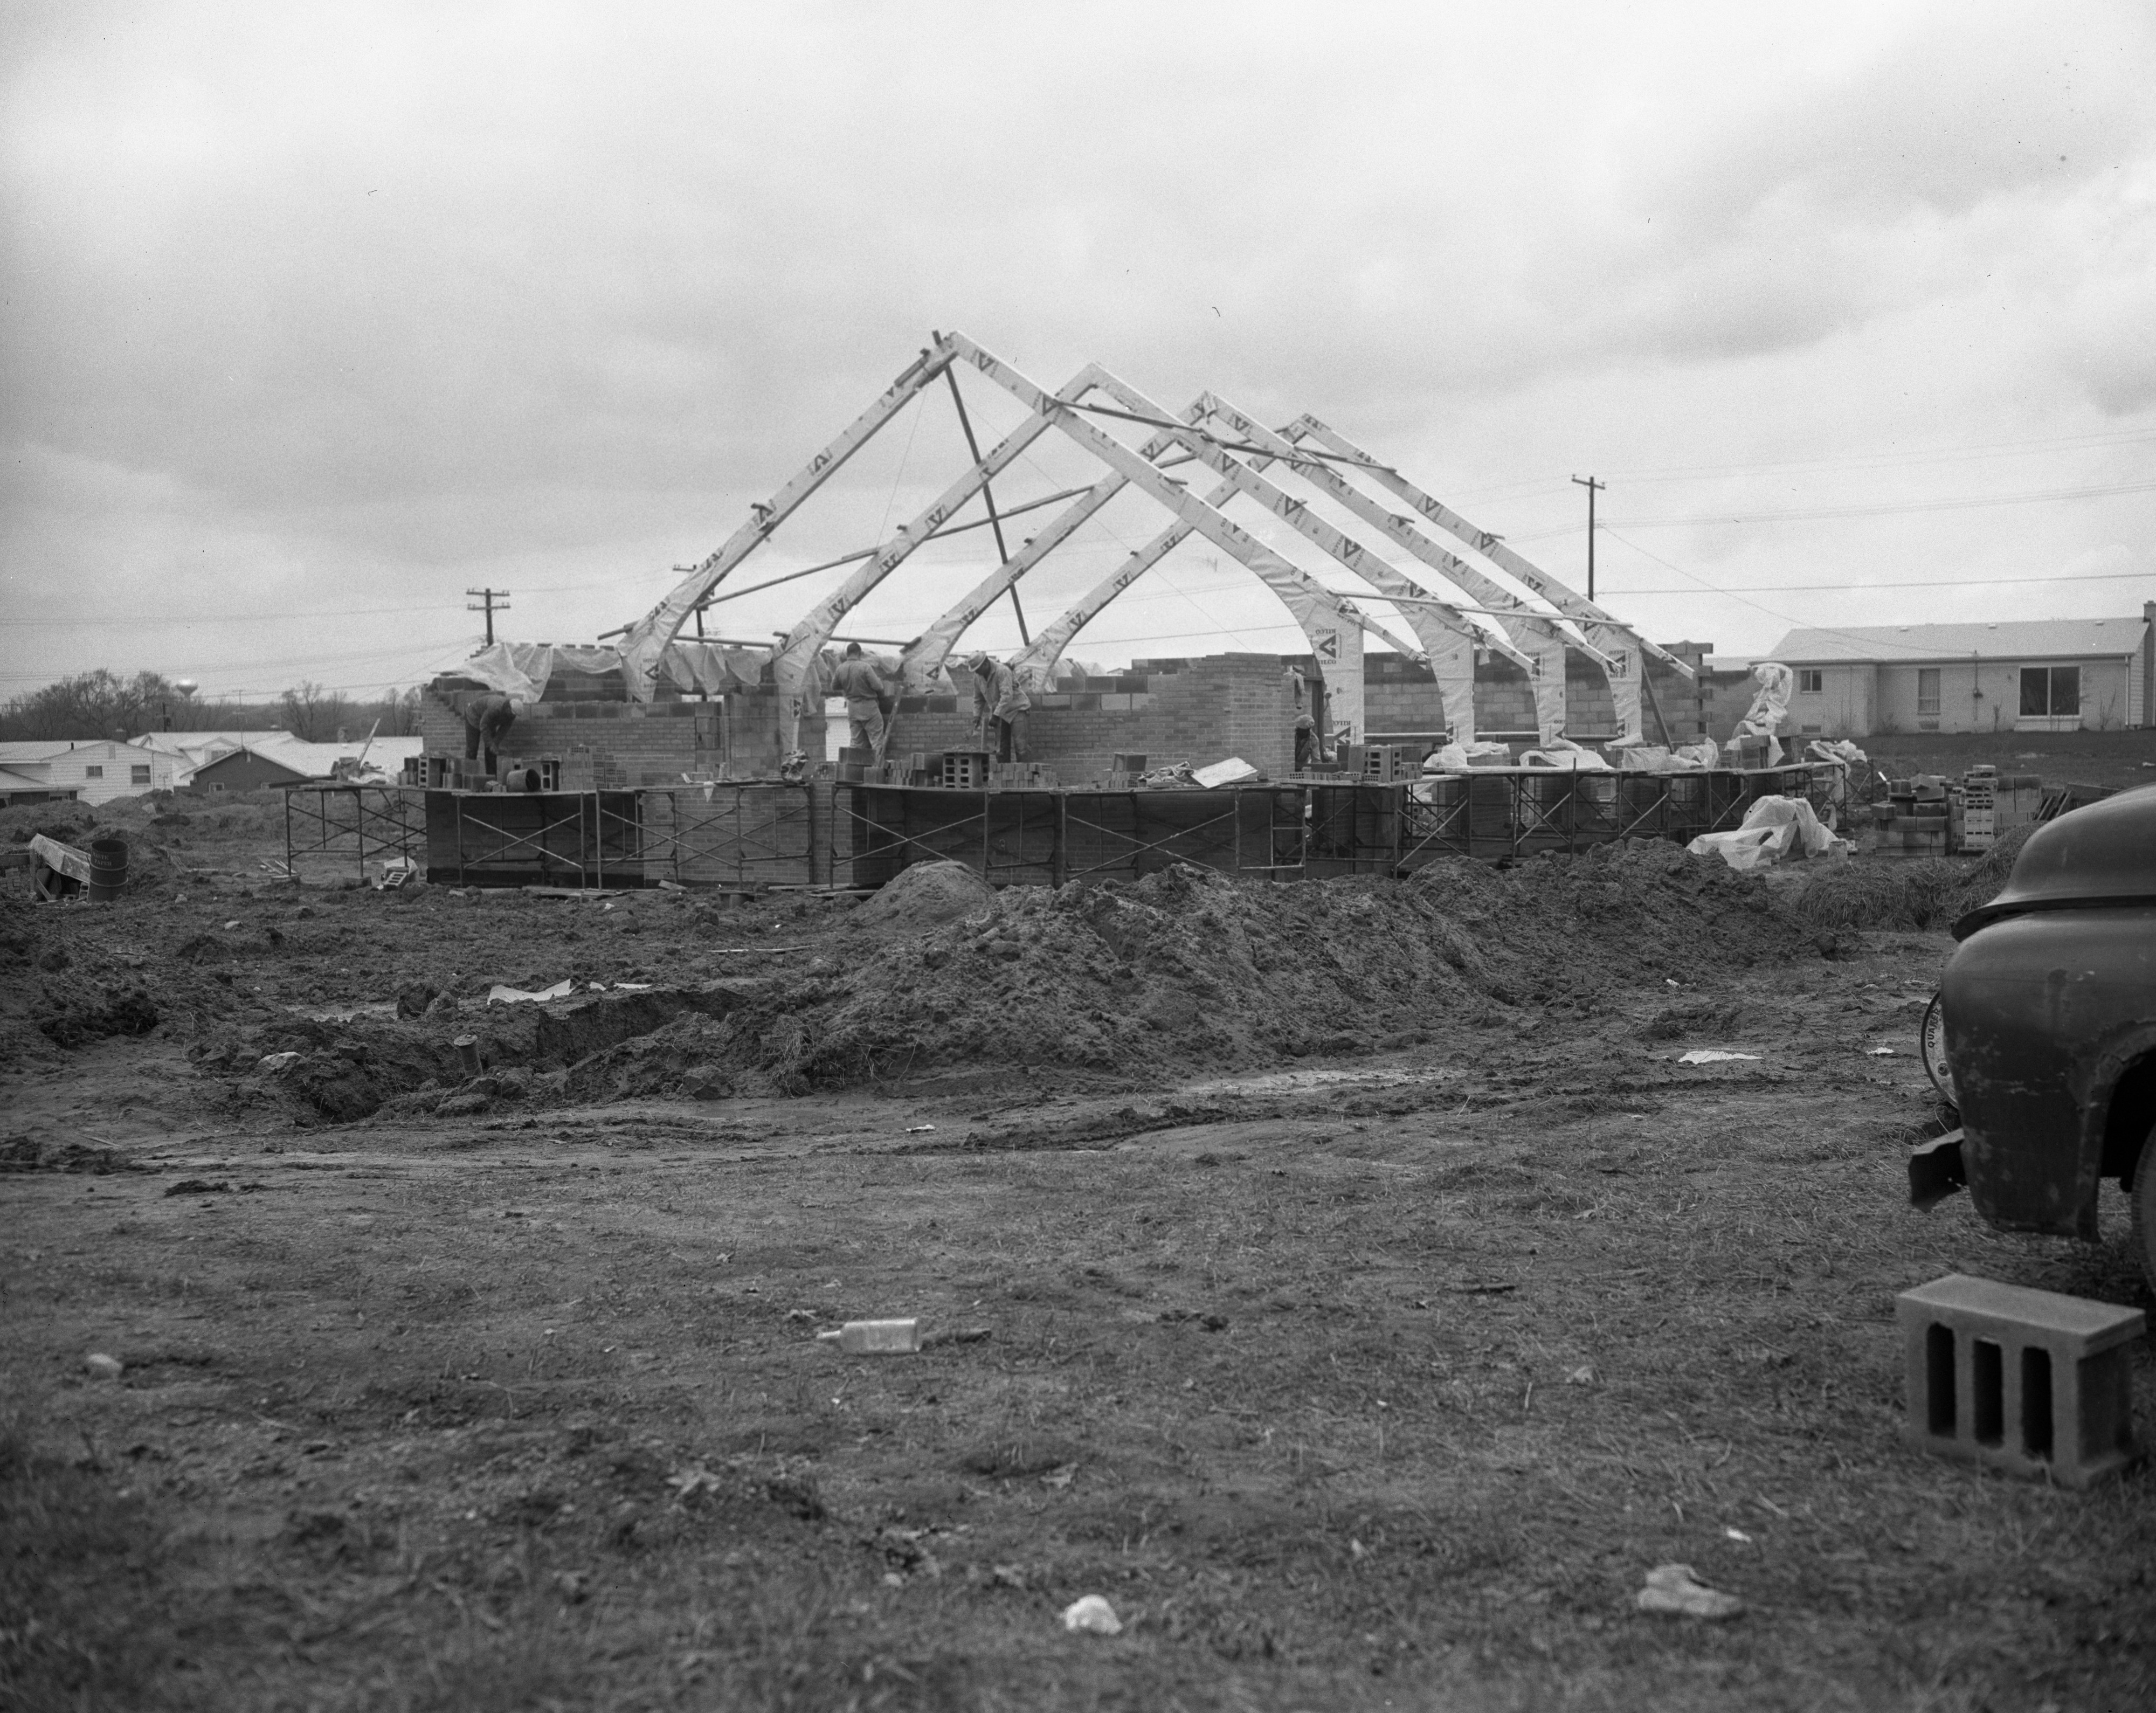 Construction on the Darlington Lutheran Church, Packard Rd, April 1963 image